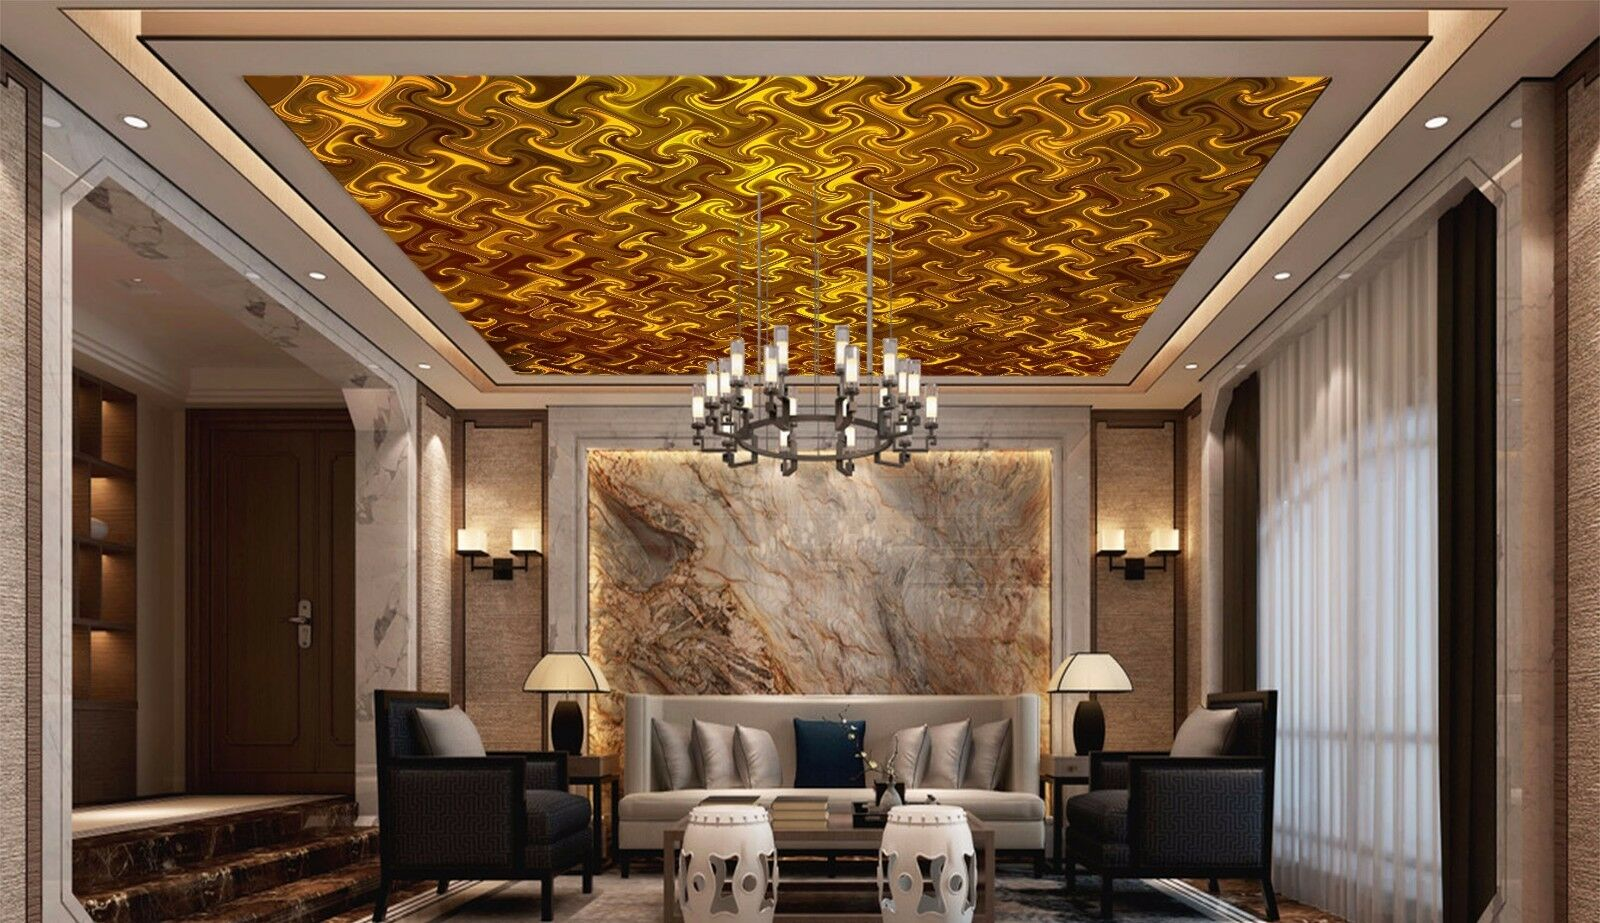 3D Glass gold 743 Ceiling WallPaper Murals Wall Print Decal Deco AJ WALLPAPER